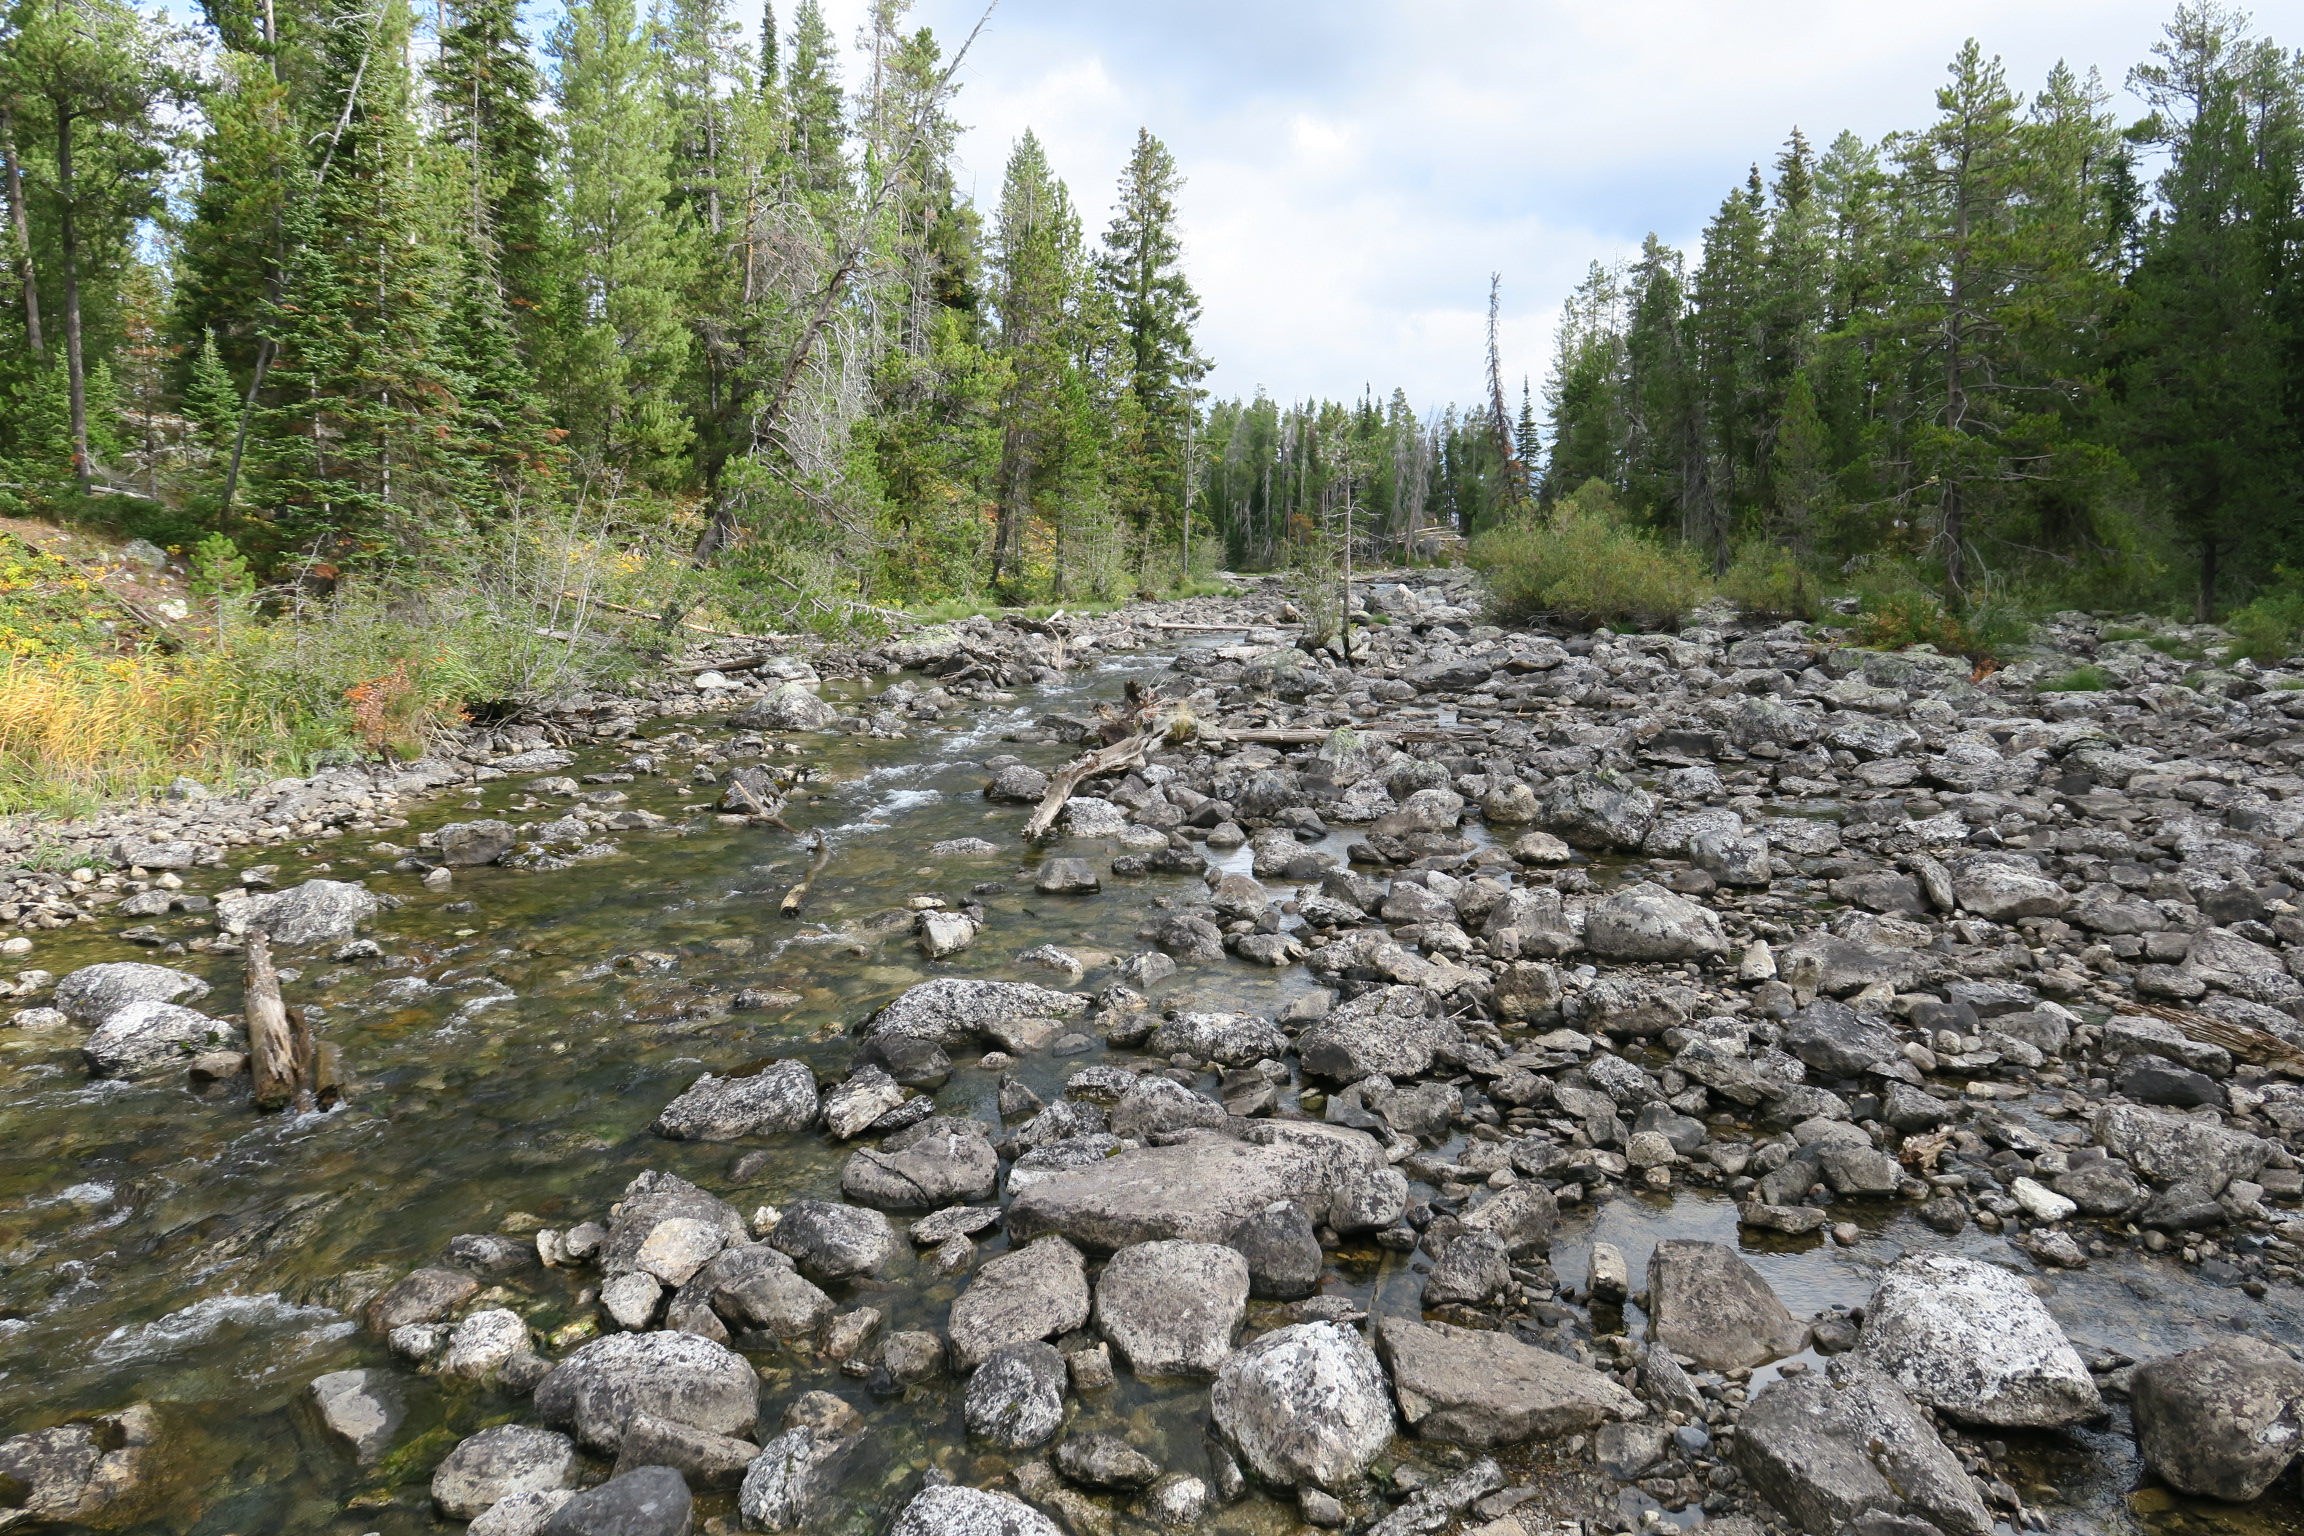 These smaller rocks and logs were also deposited by glaciers/meltwater ...